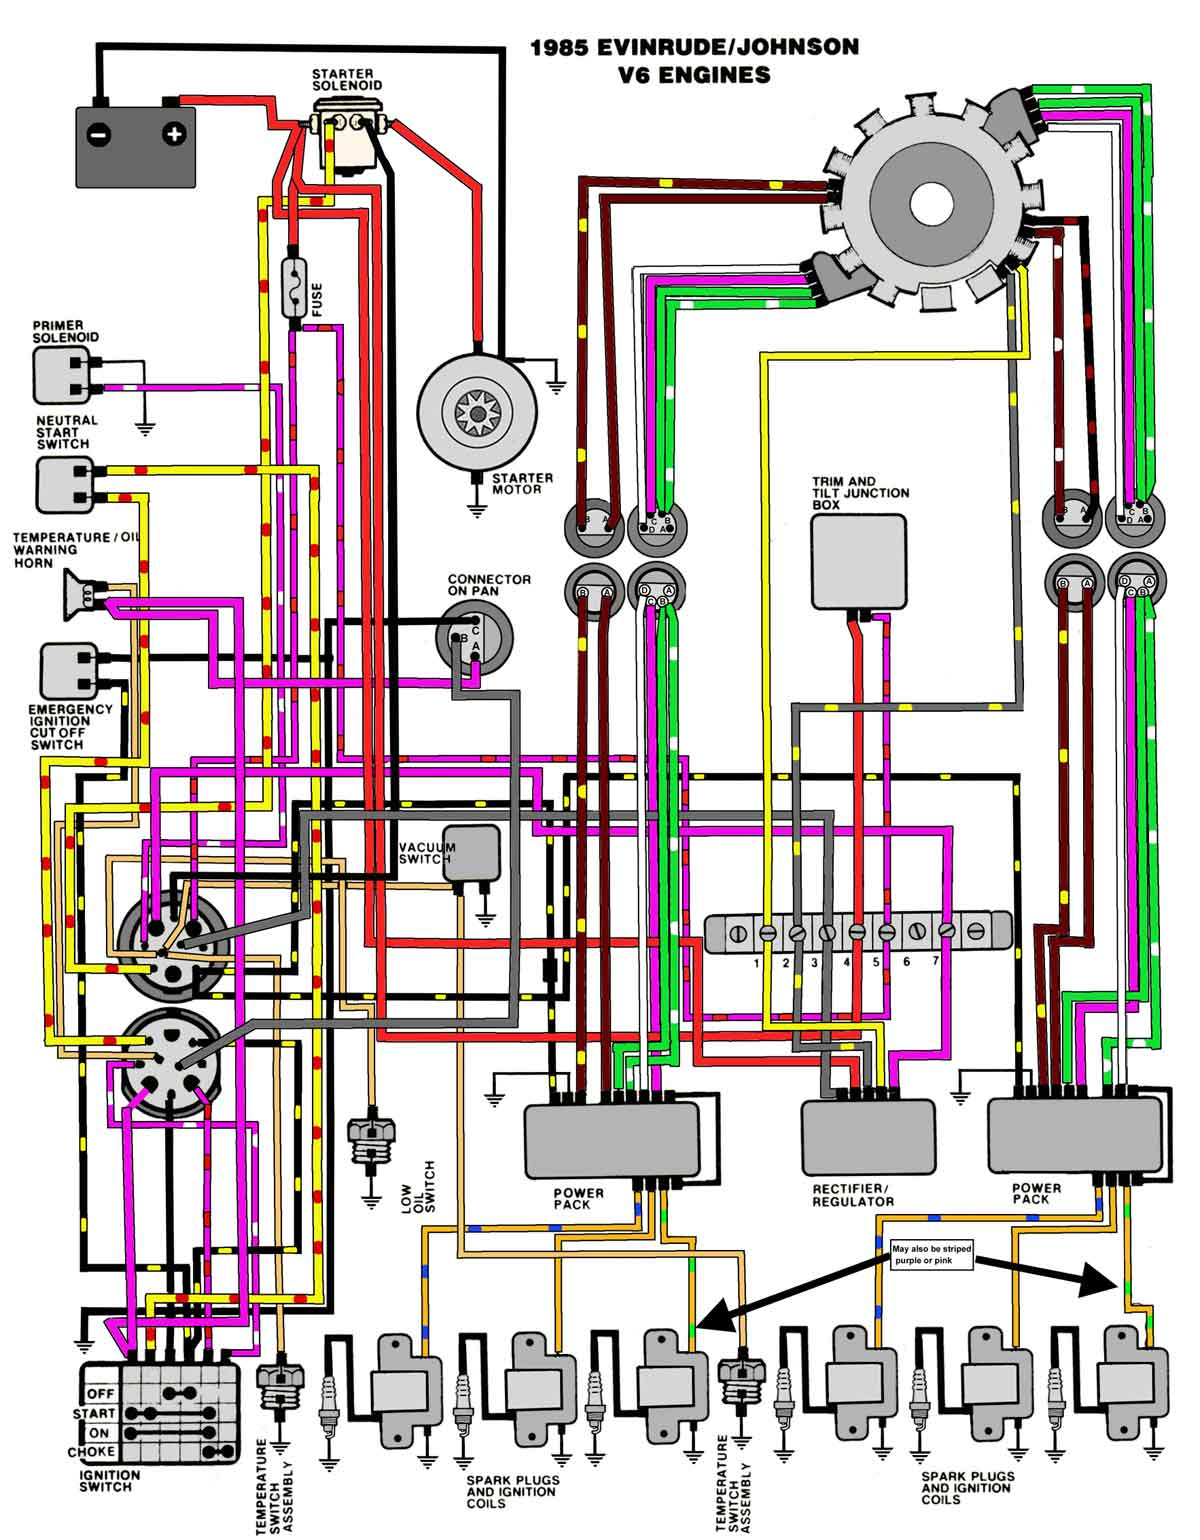 85_V6 mastertech marine evinrude johnson outboard wiring diagrams  at soozxer.org